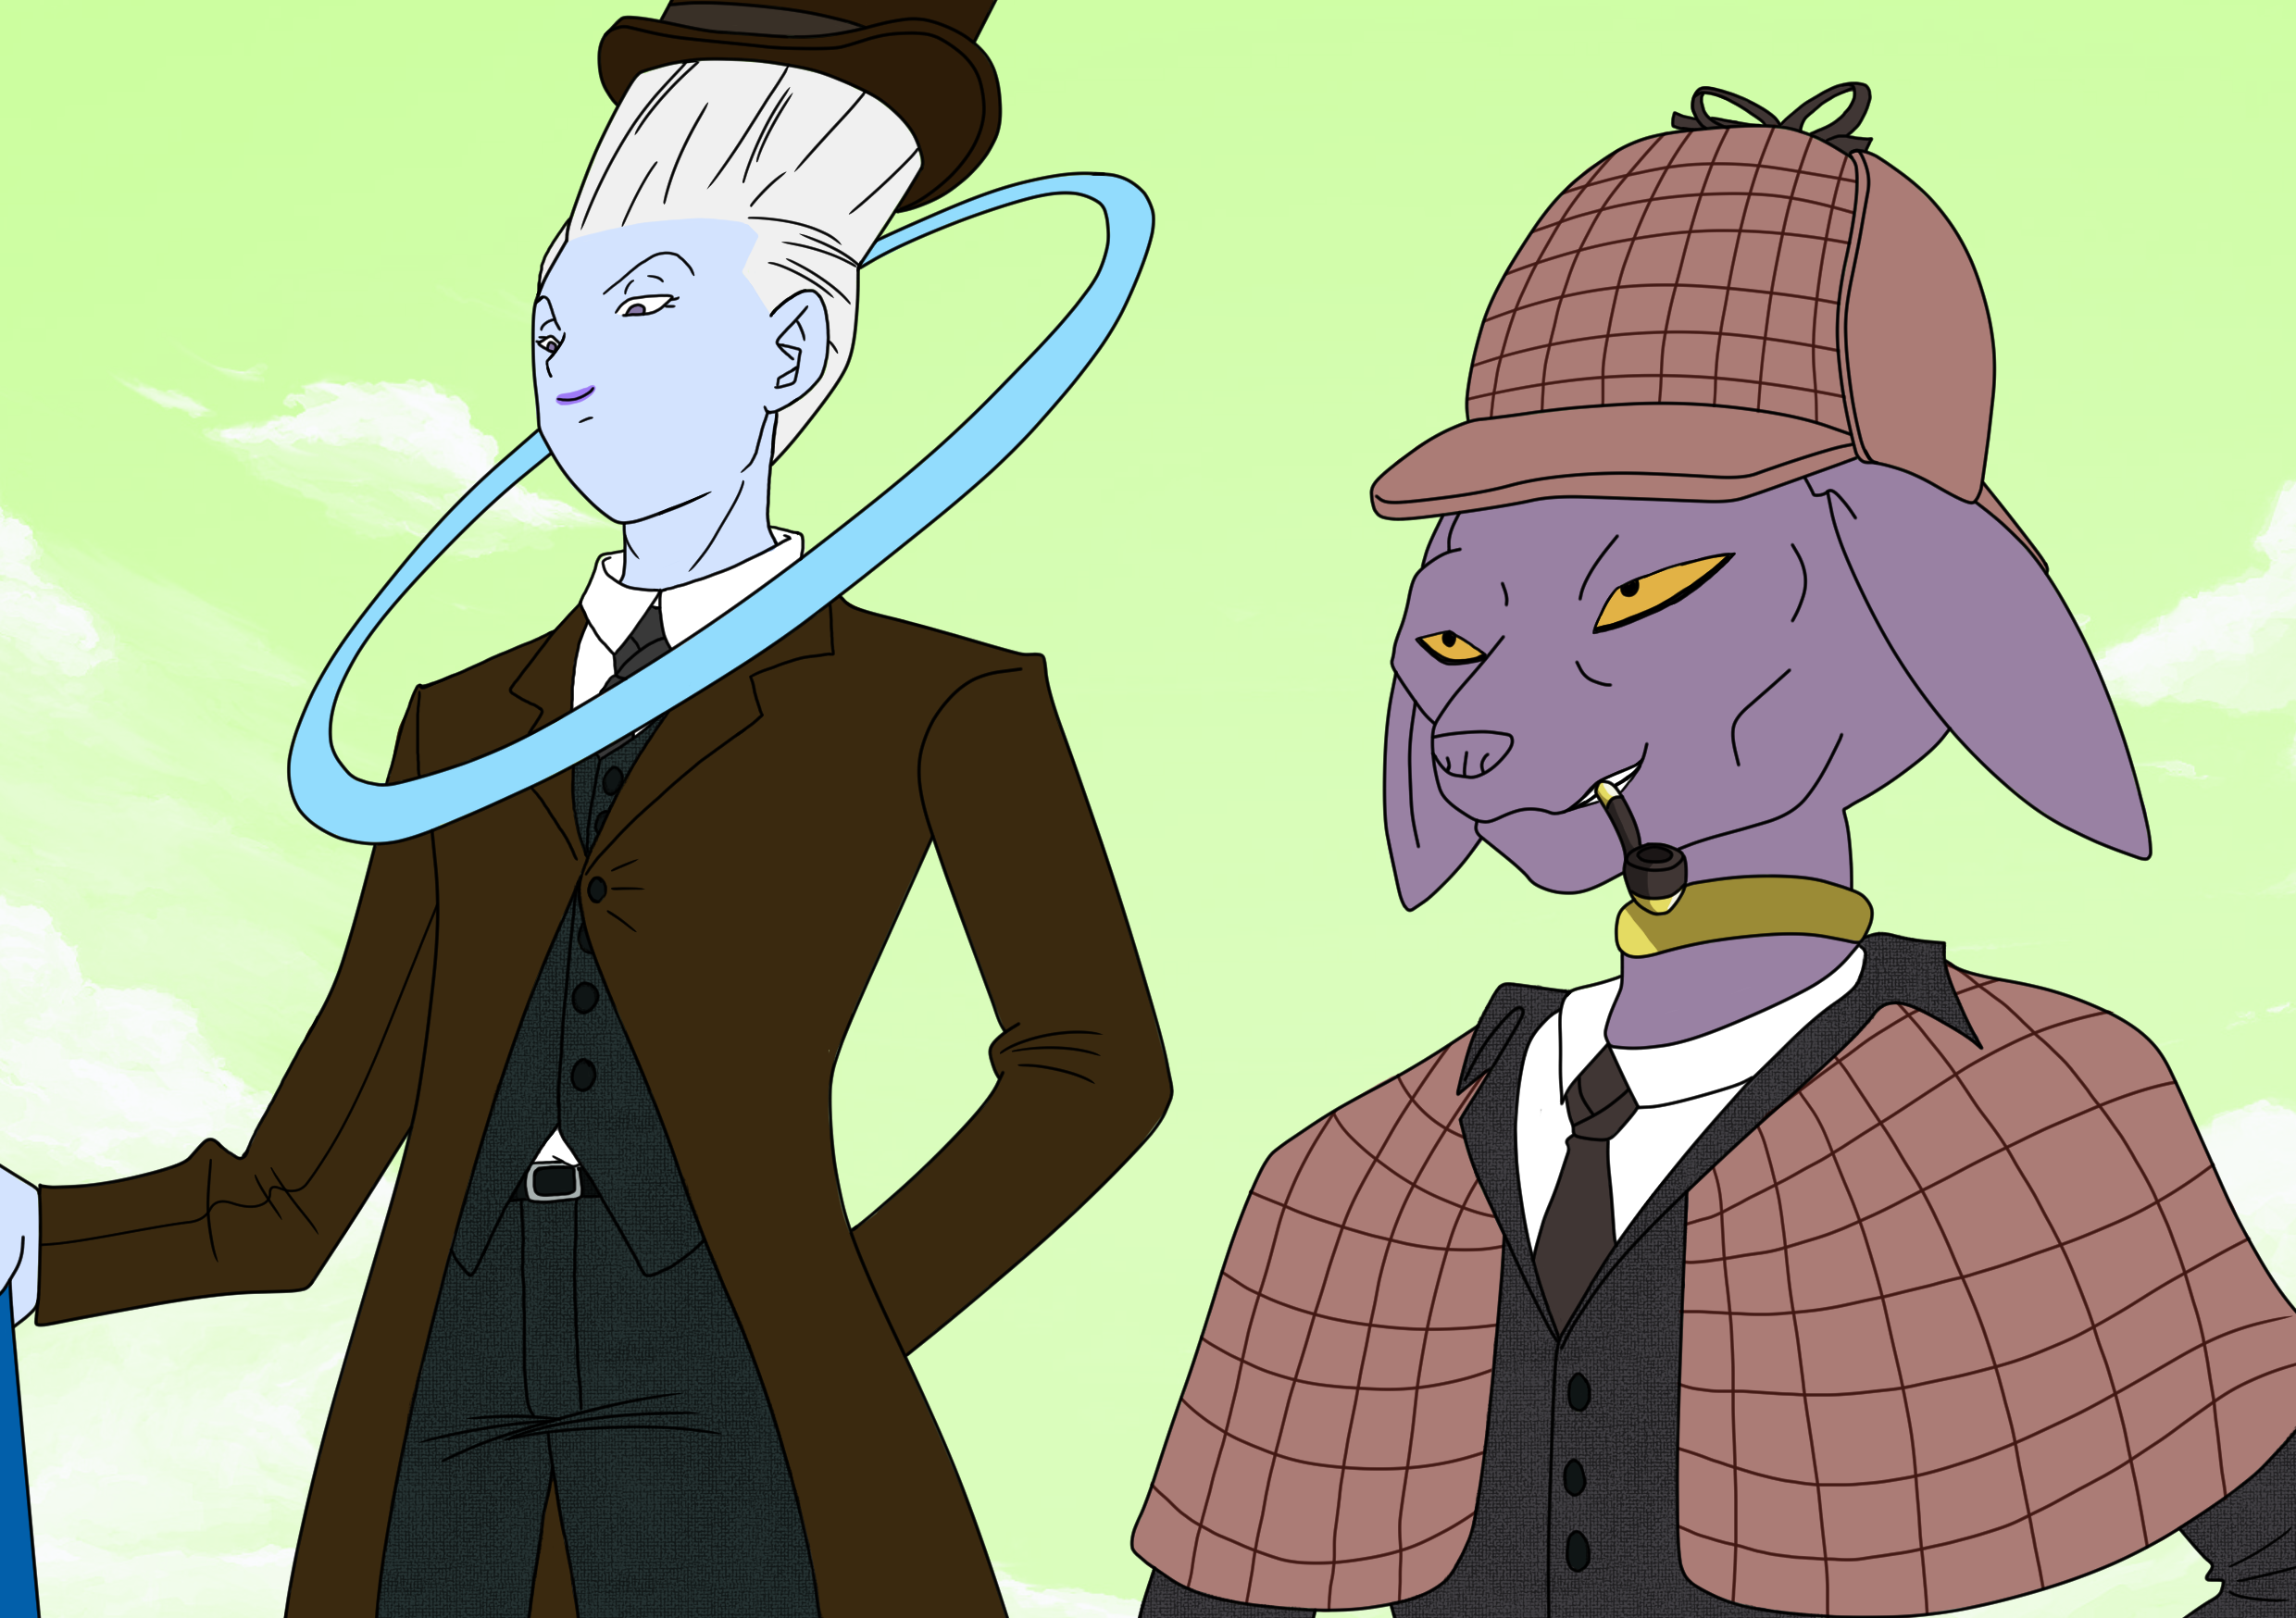 Beerus Holmes and Dr. Whis